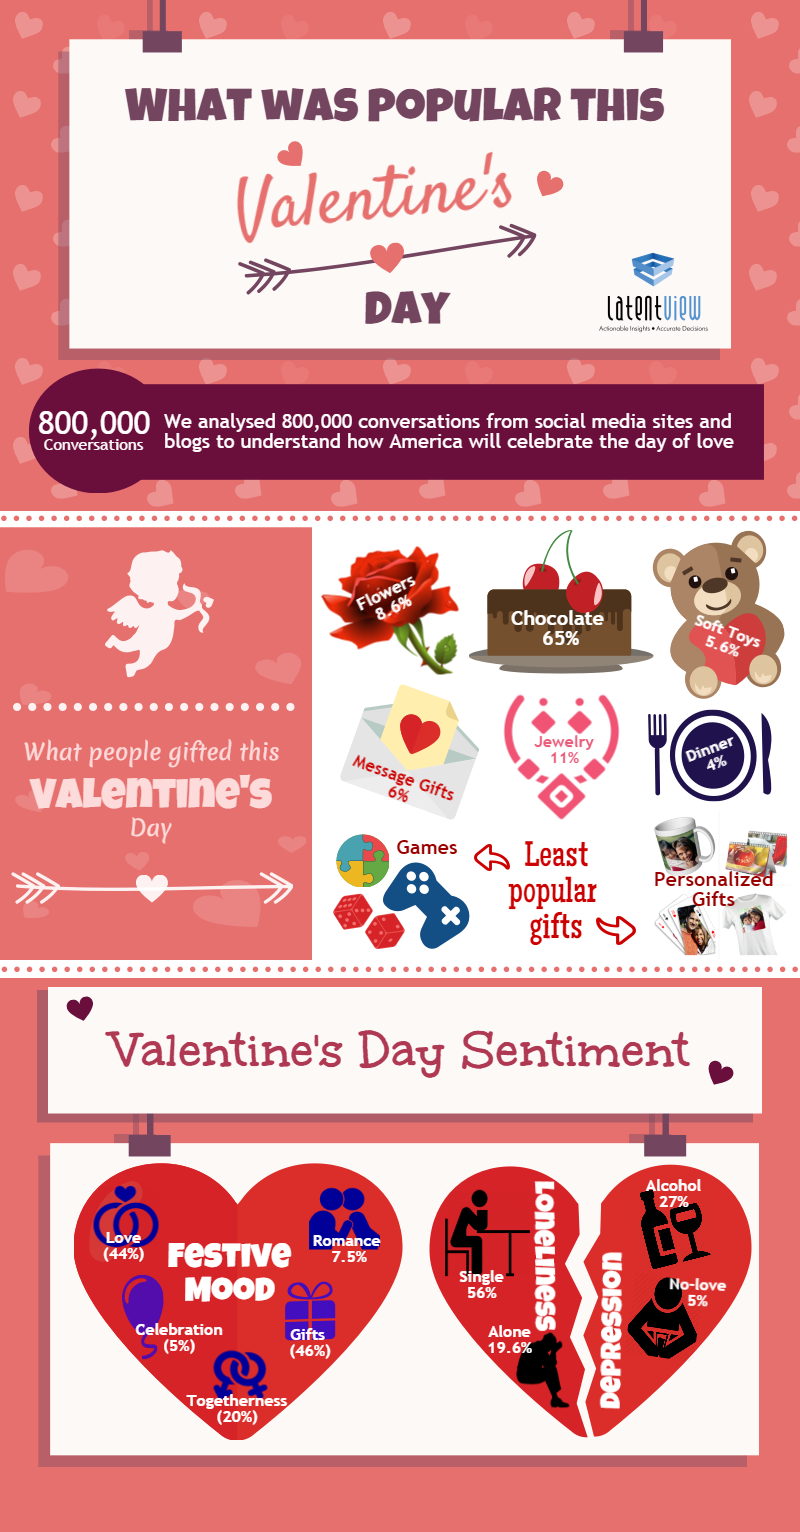 What Was Popular This Valentine's Day - A Social Media Trend Analysis